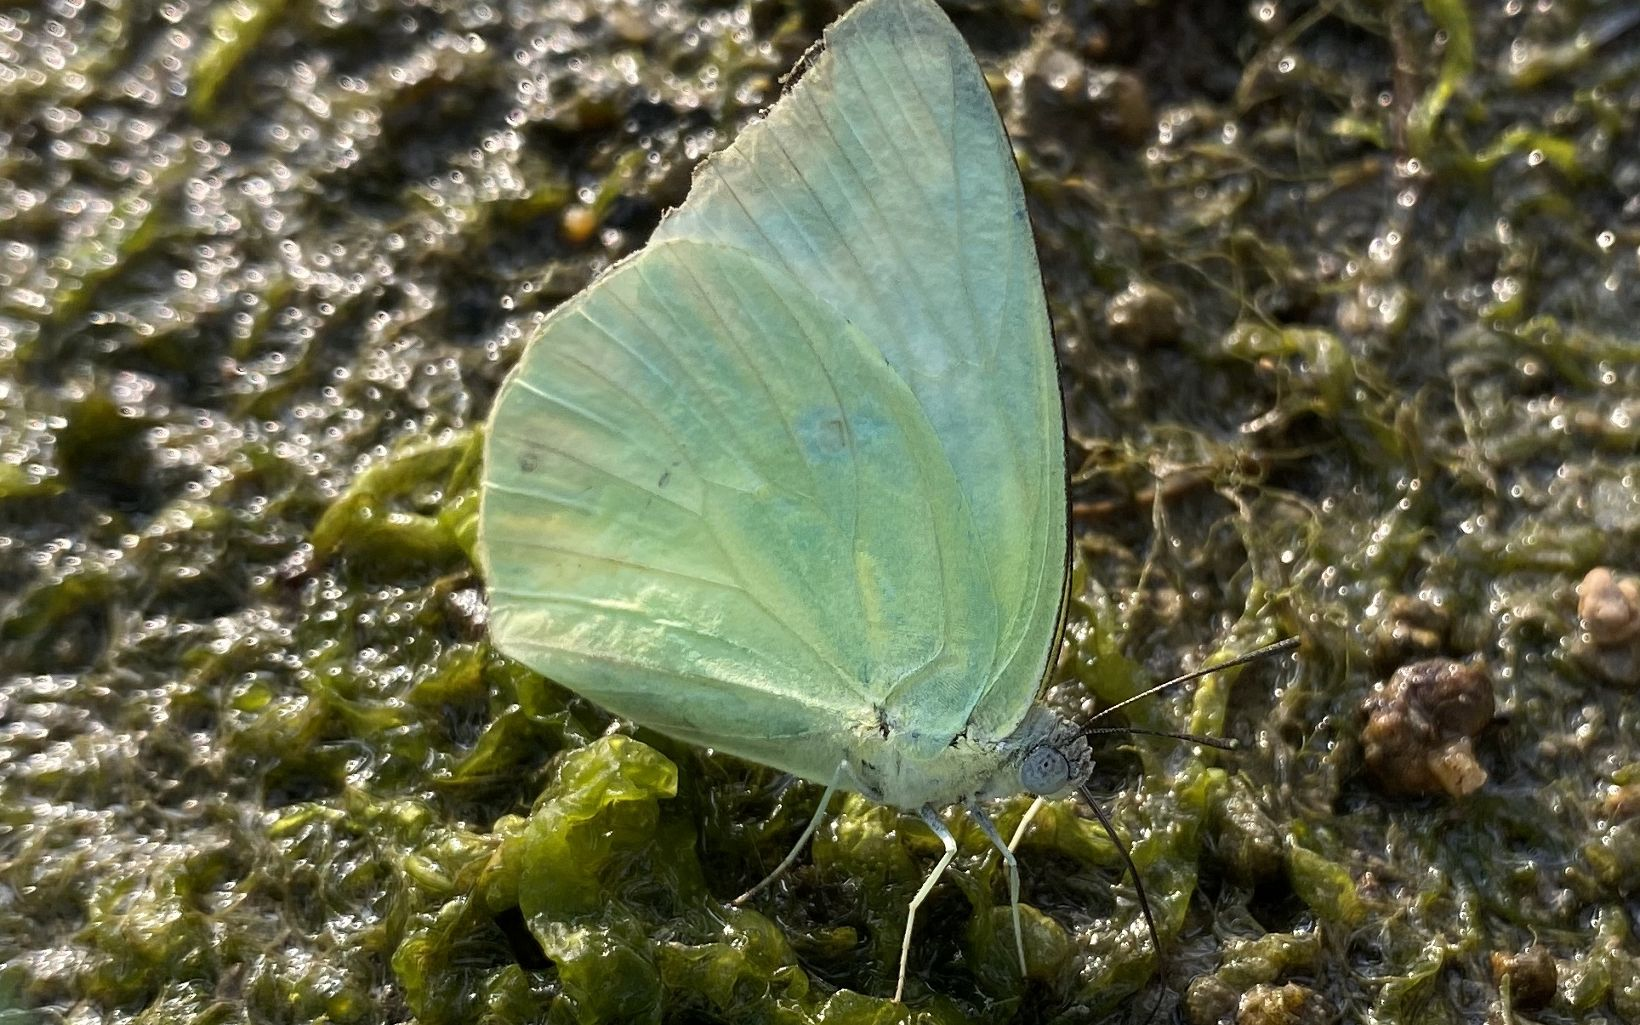 Up close photo of a light green butterfly.